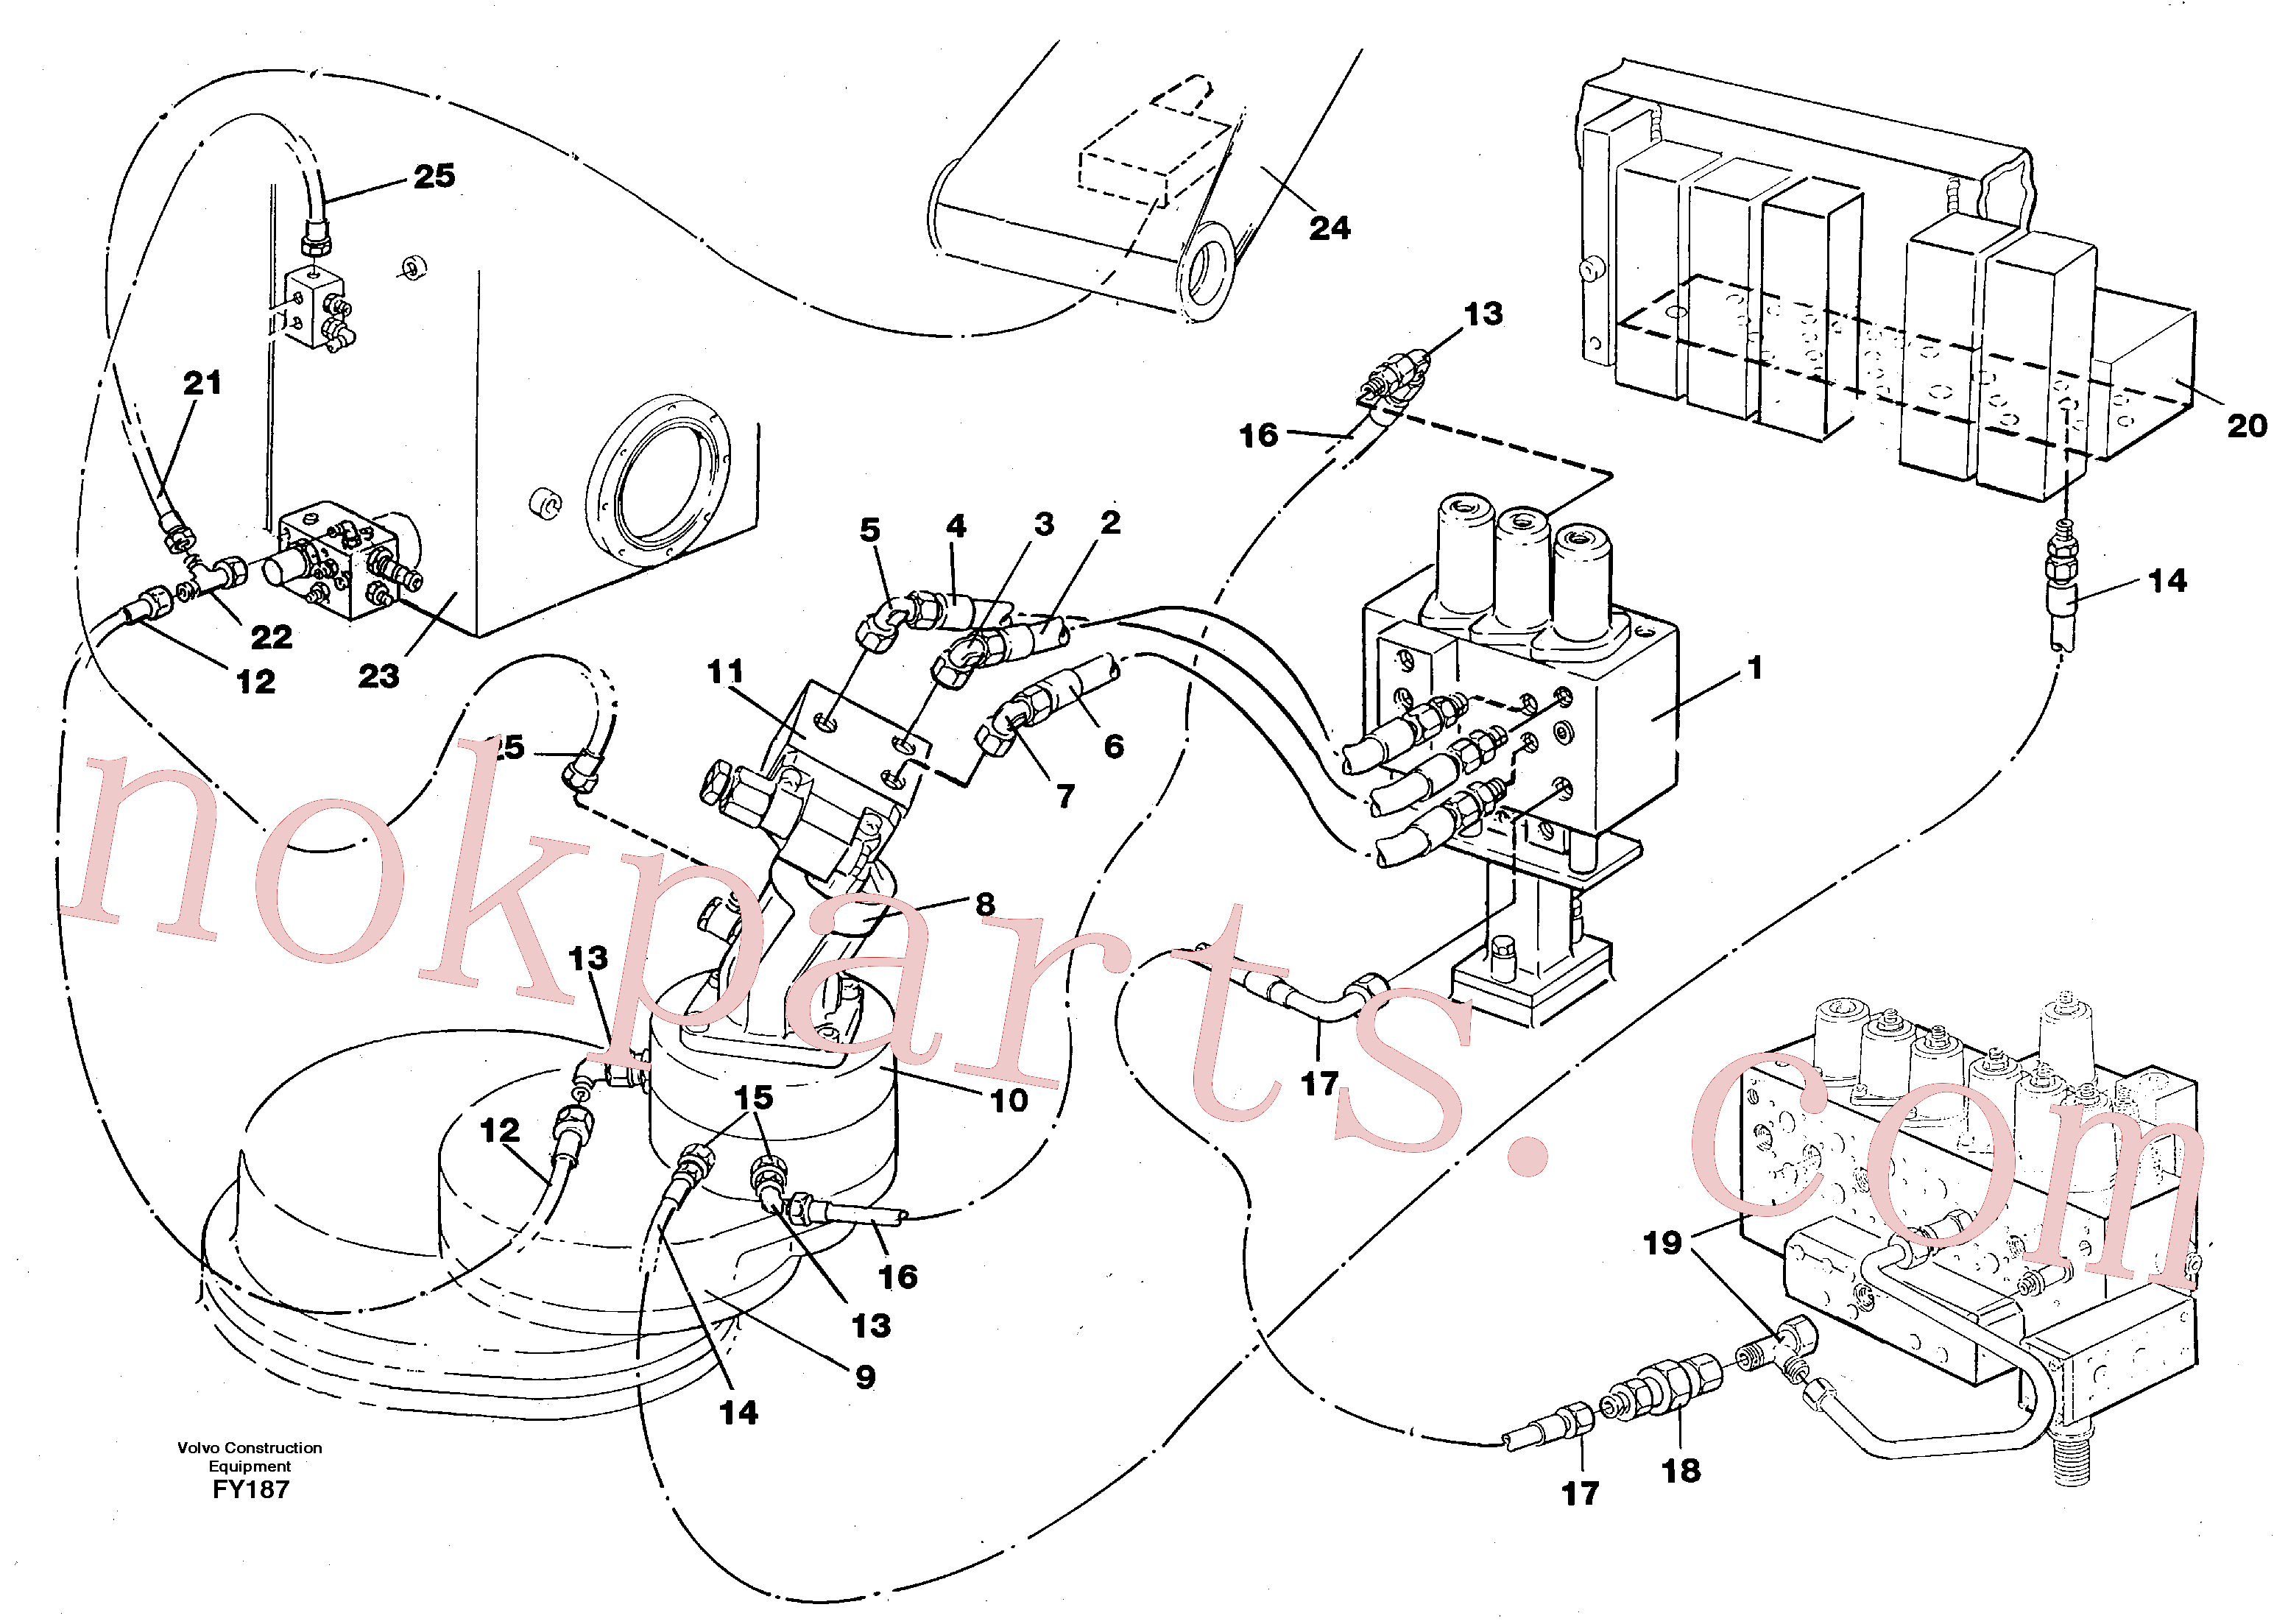 VOE14263247 for Volvo Boom swing system(FY187 assembly)